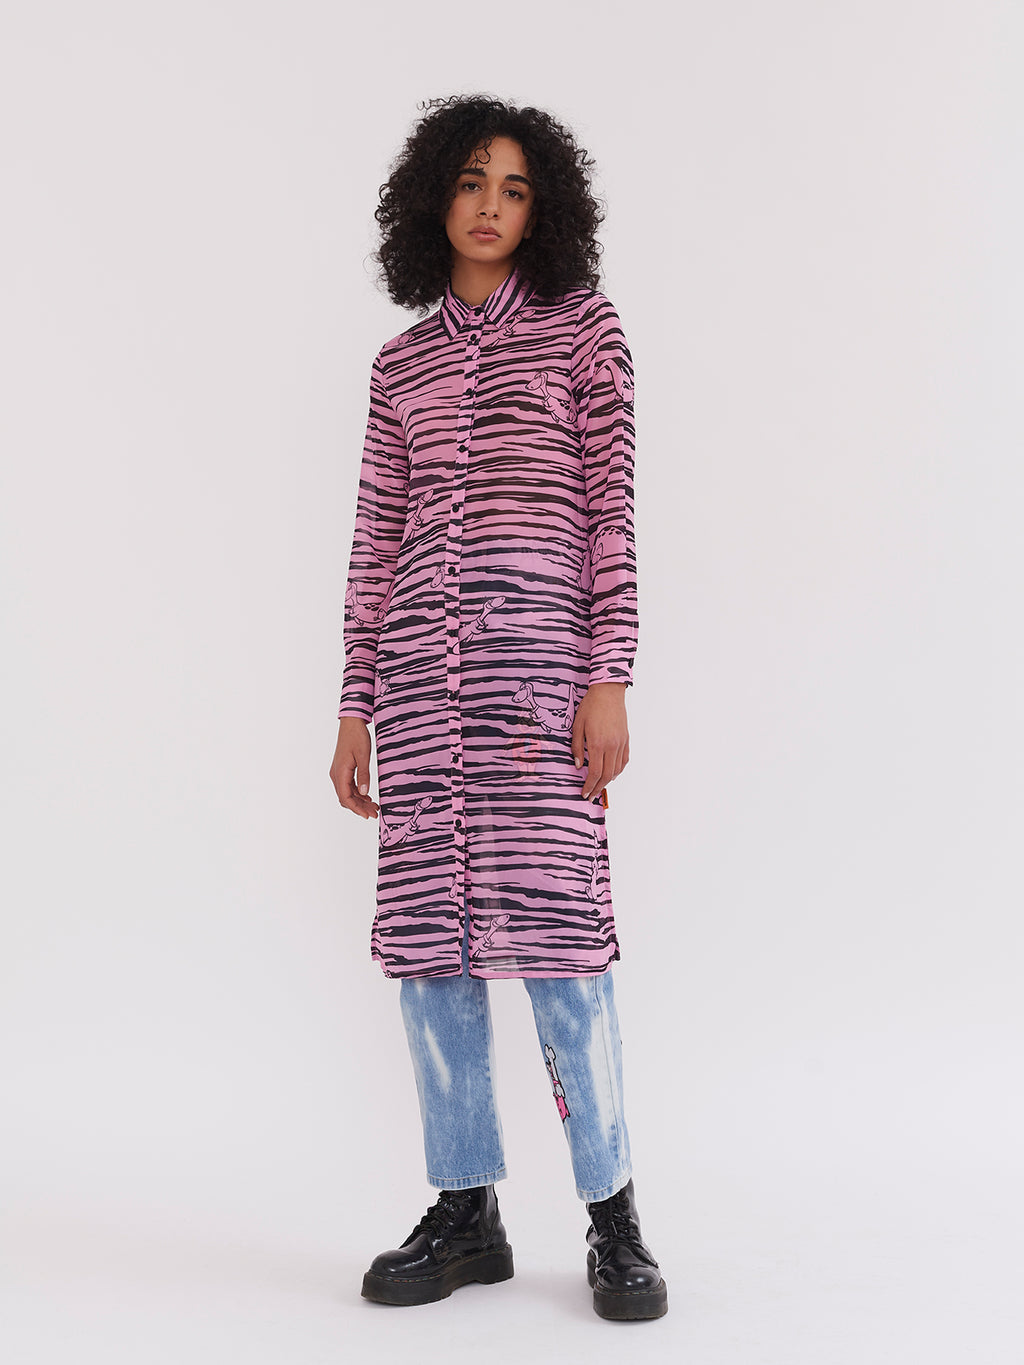 Lazy Oaf x The Flintstones Sheer Dino Shirt Dress